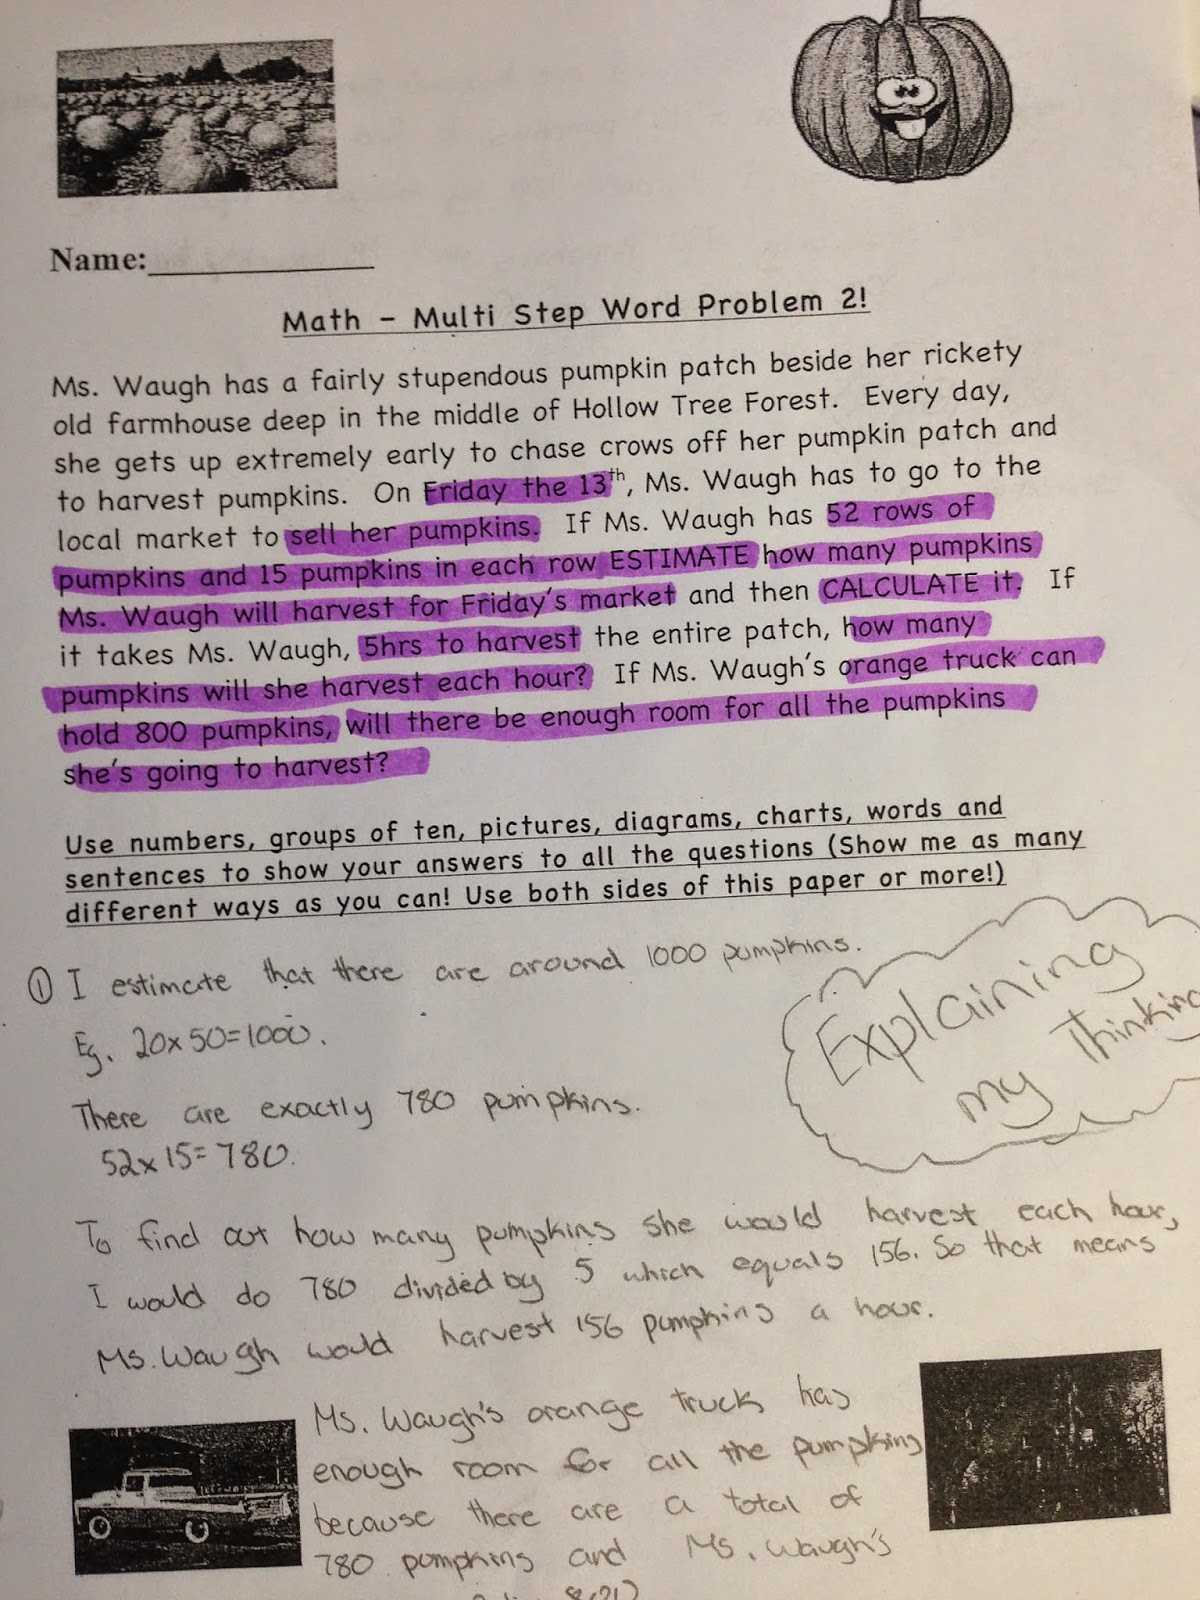 Solving Systems Of Equations Word Problems Worksheet Answer Key as Well as Waugh S Wonders Math